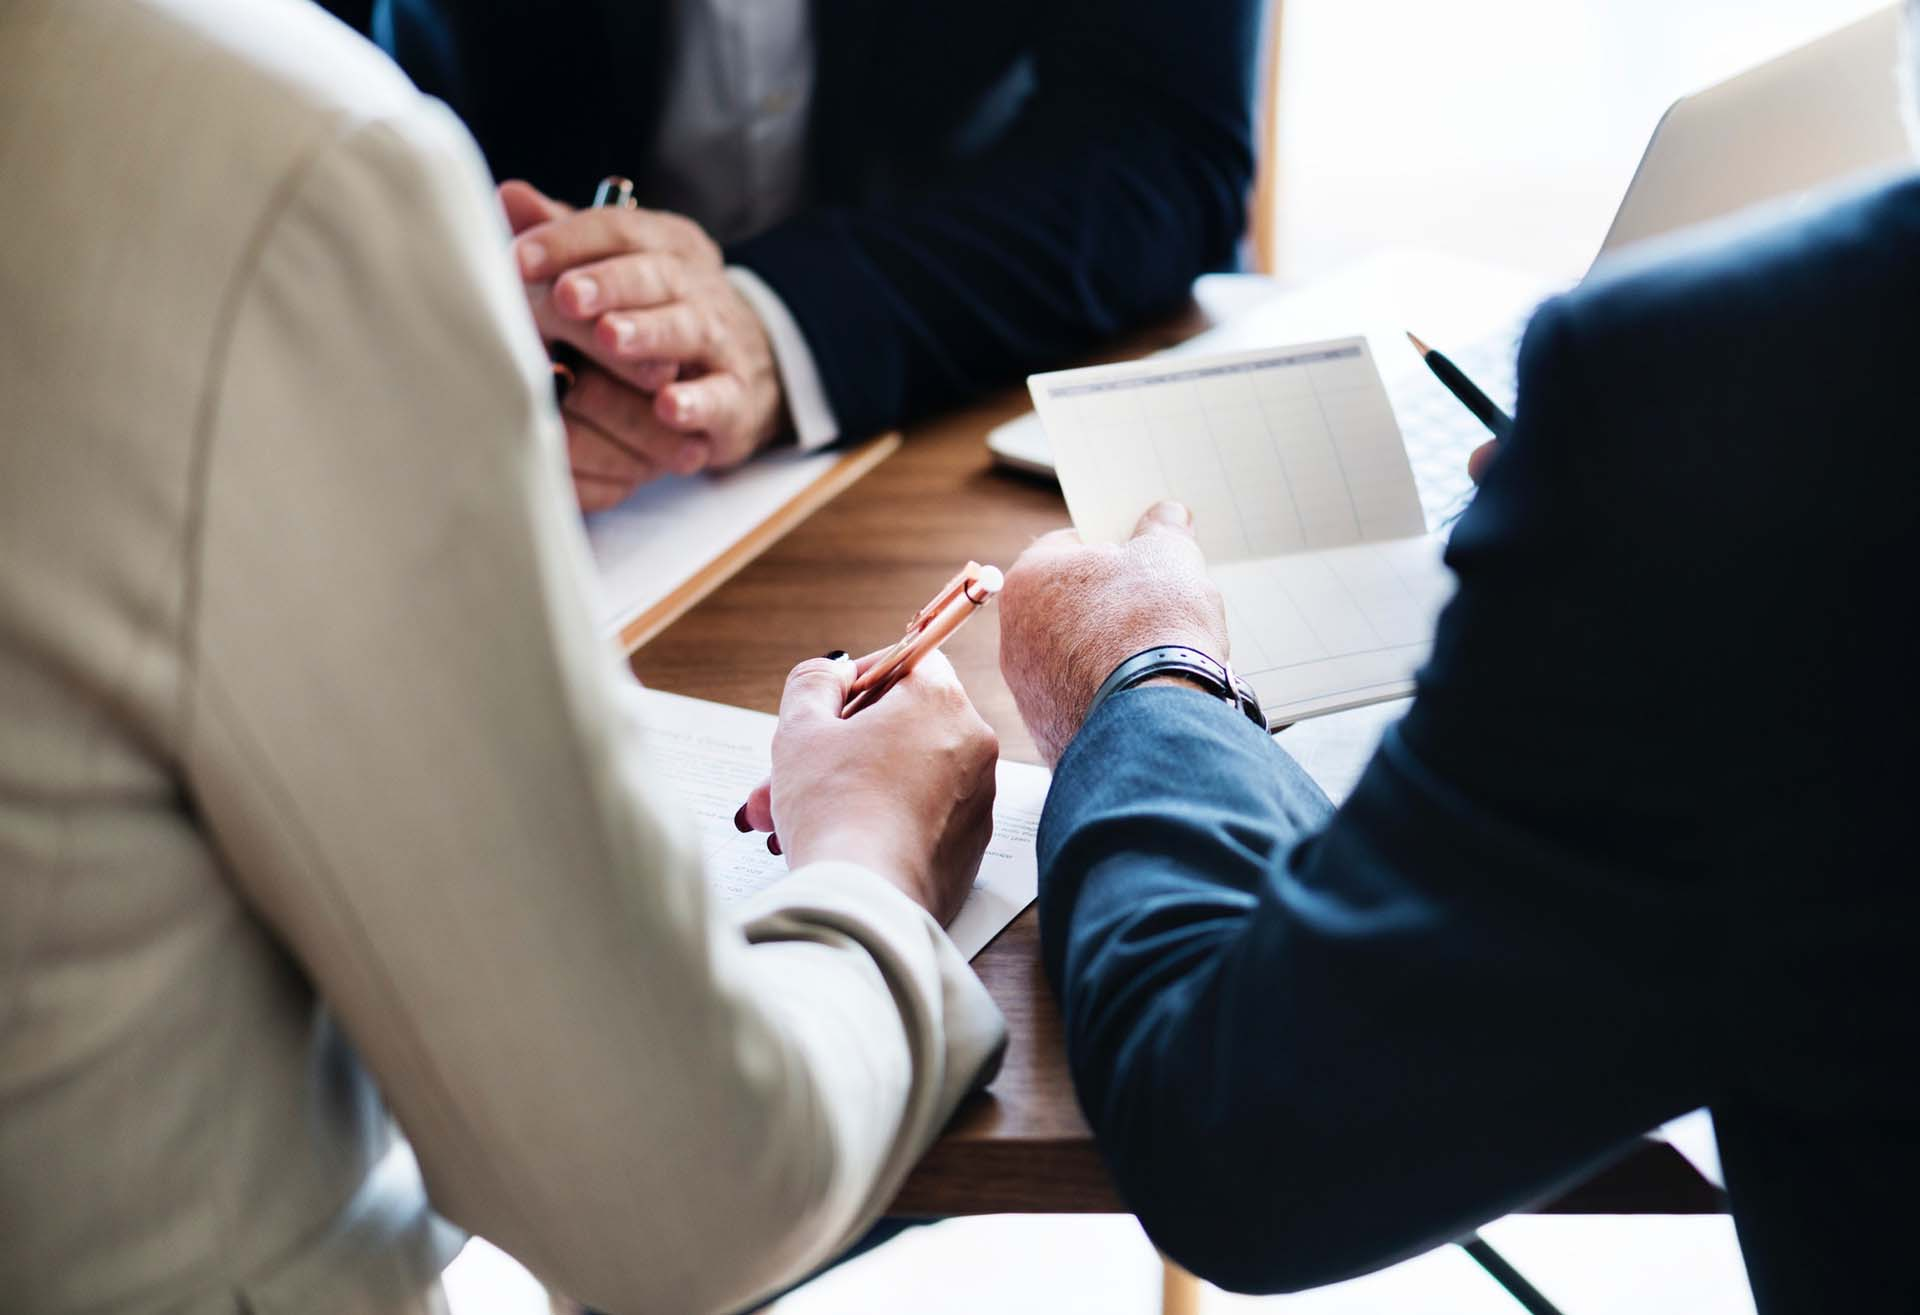 Three people looking at documents in a business meeting